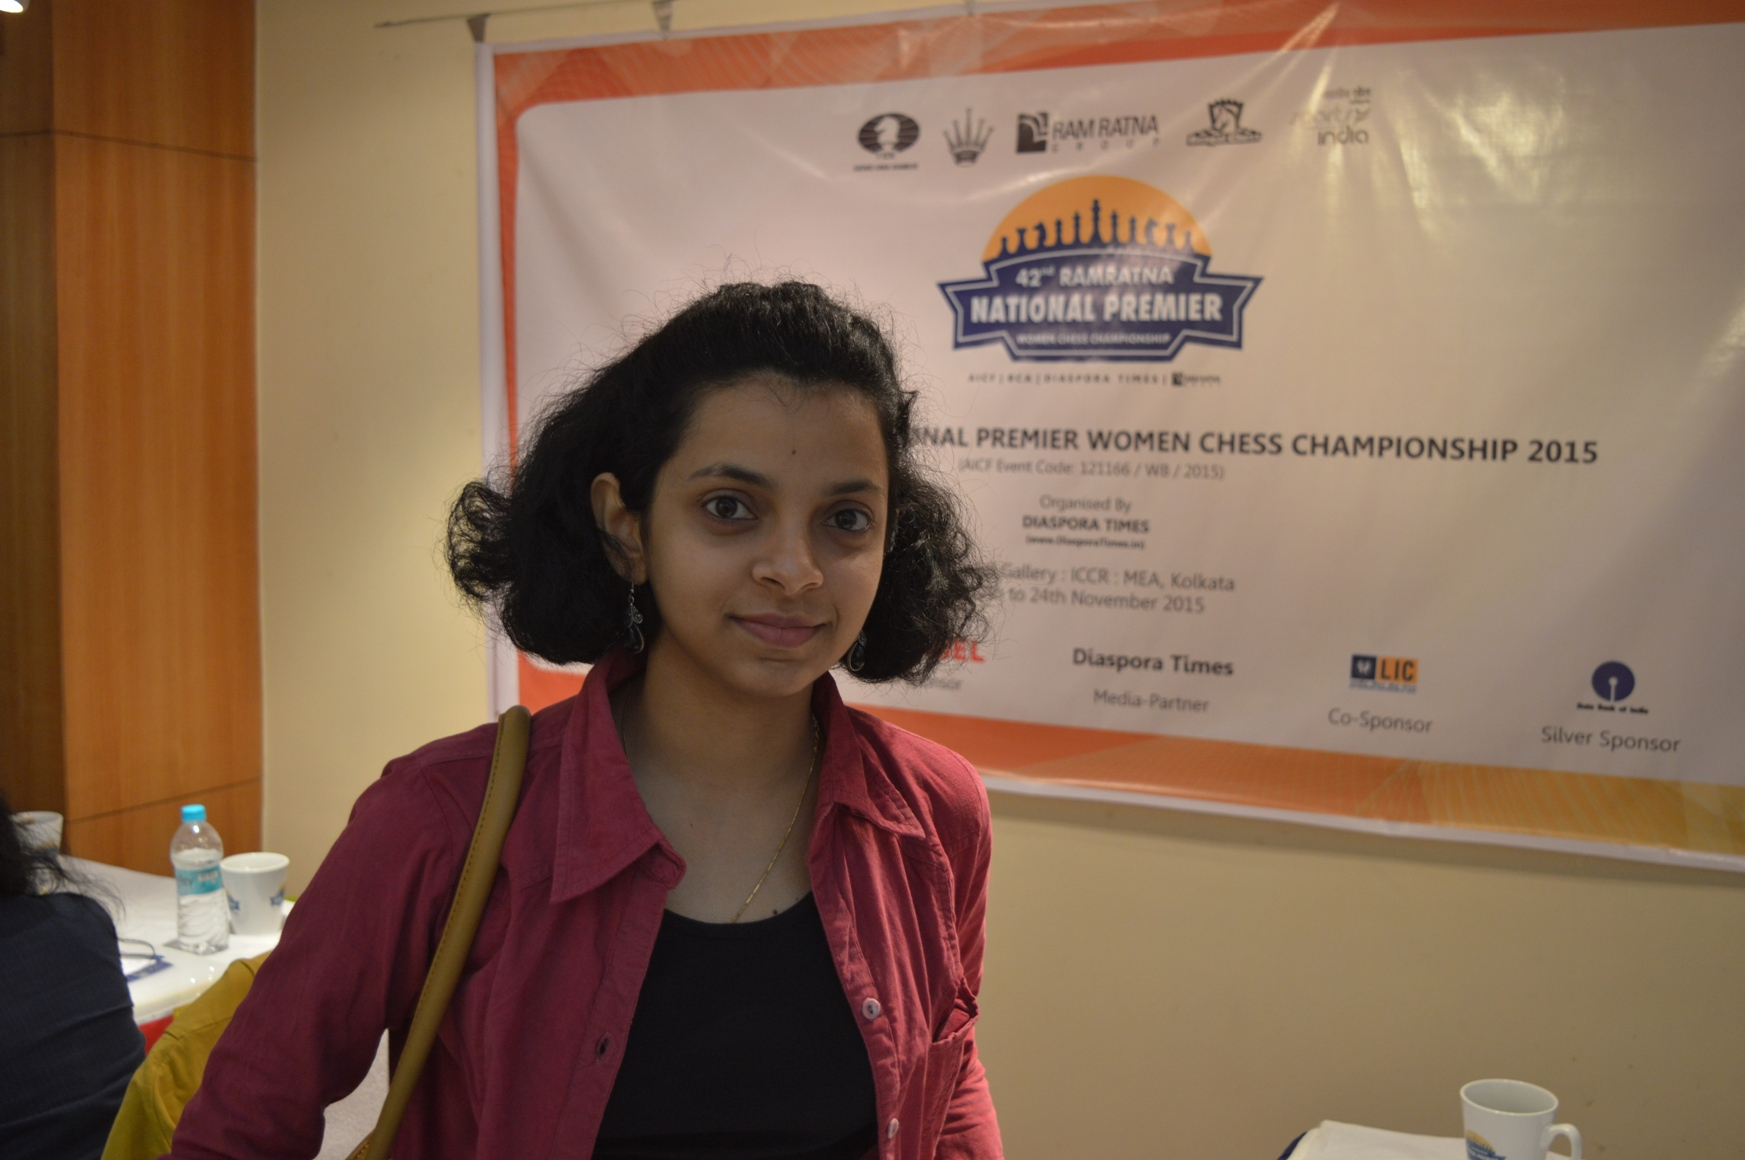 Soumya Beats Swati Ghate For Second Place